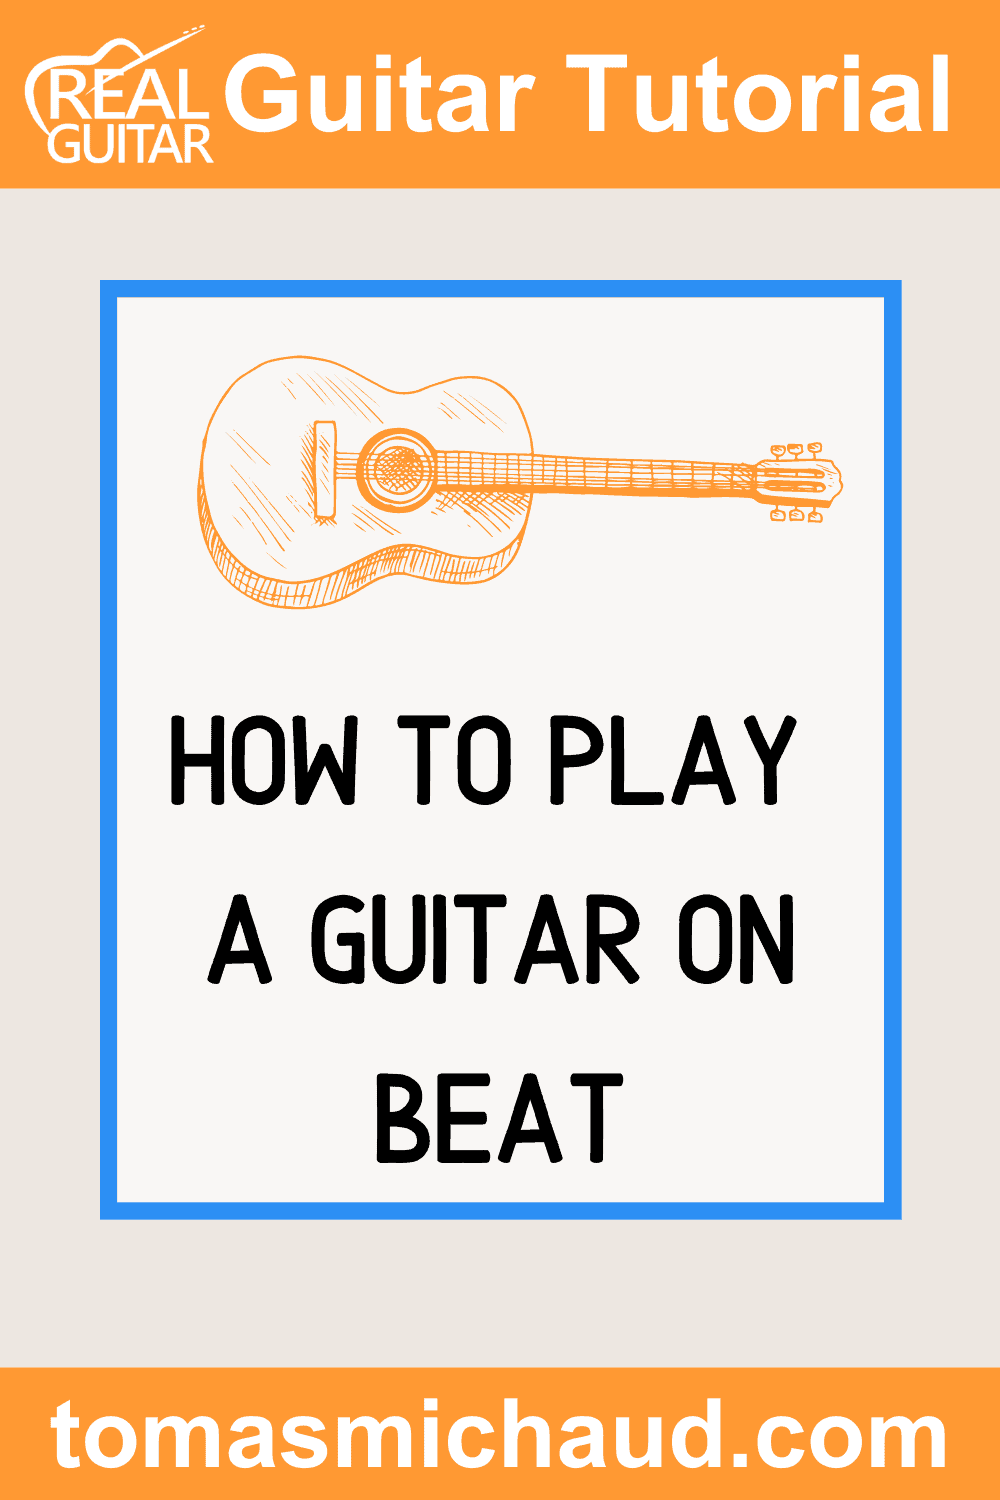 How To Play A Guitar On Beat